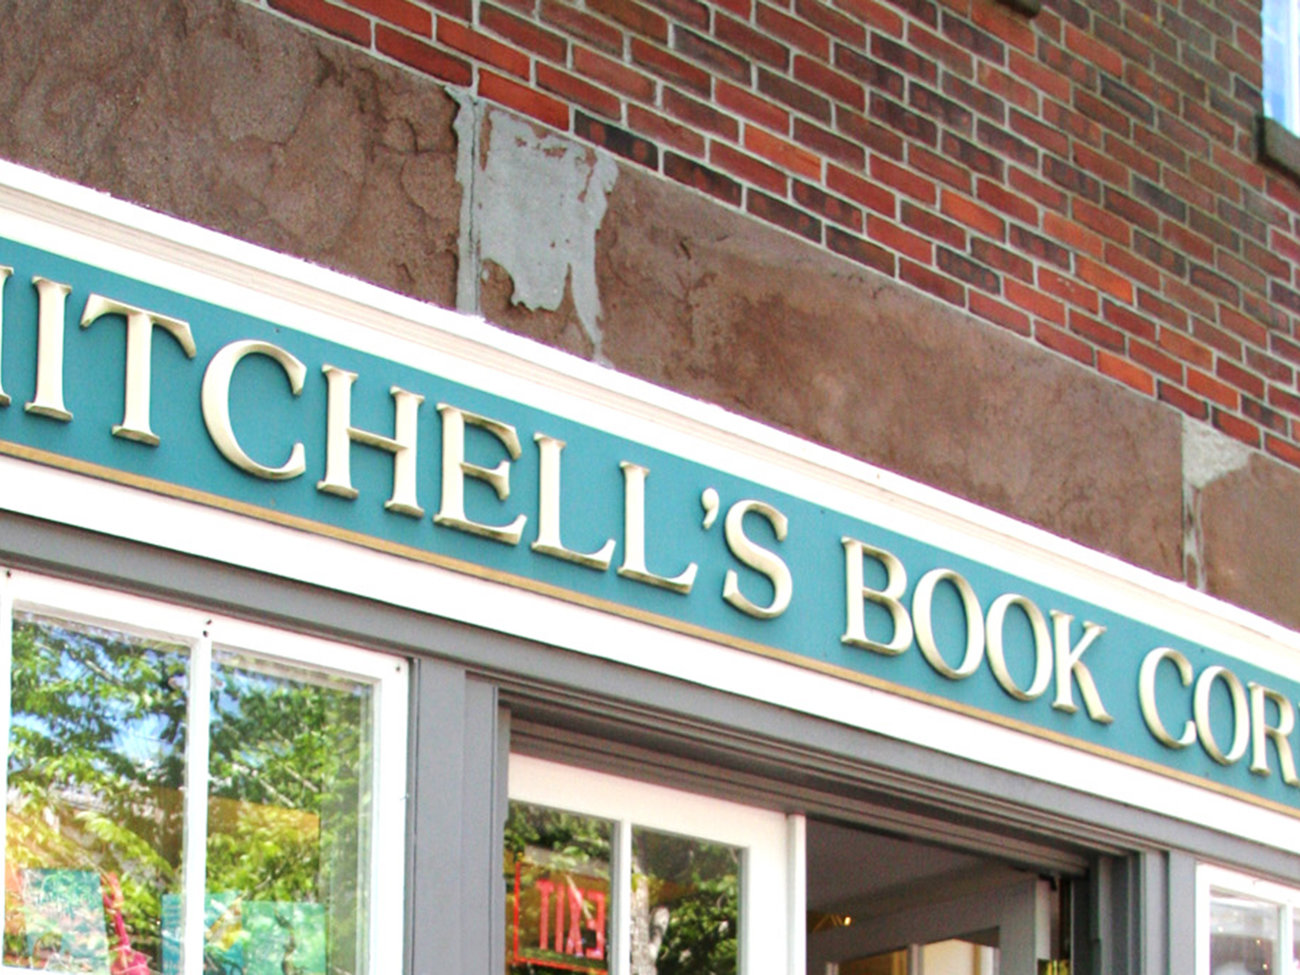 Mitchell's Book Corner Store in Nantucket